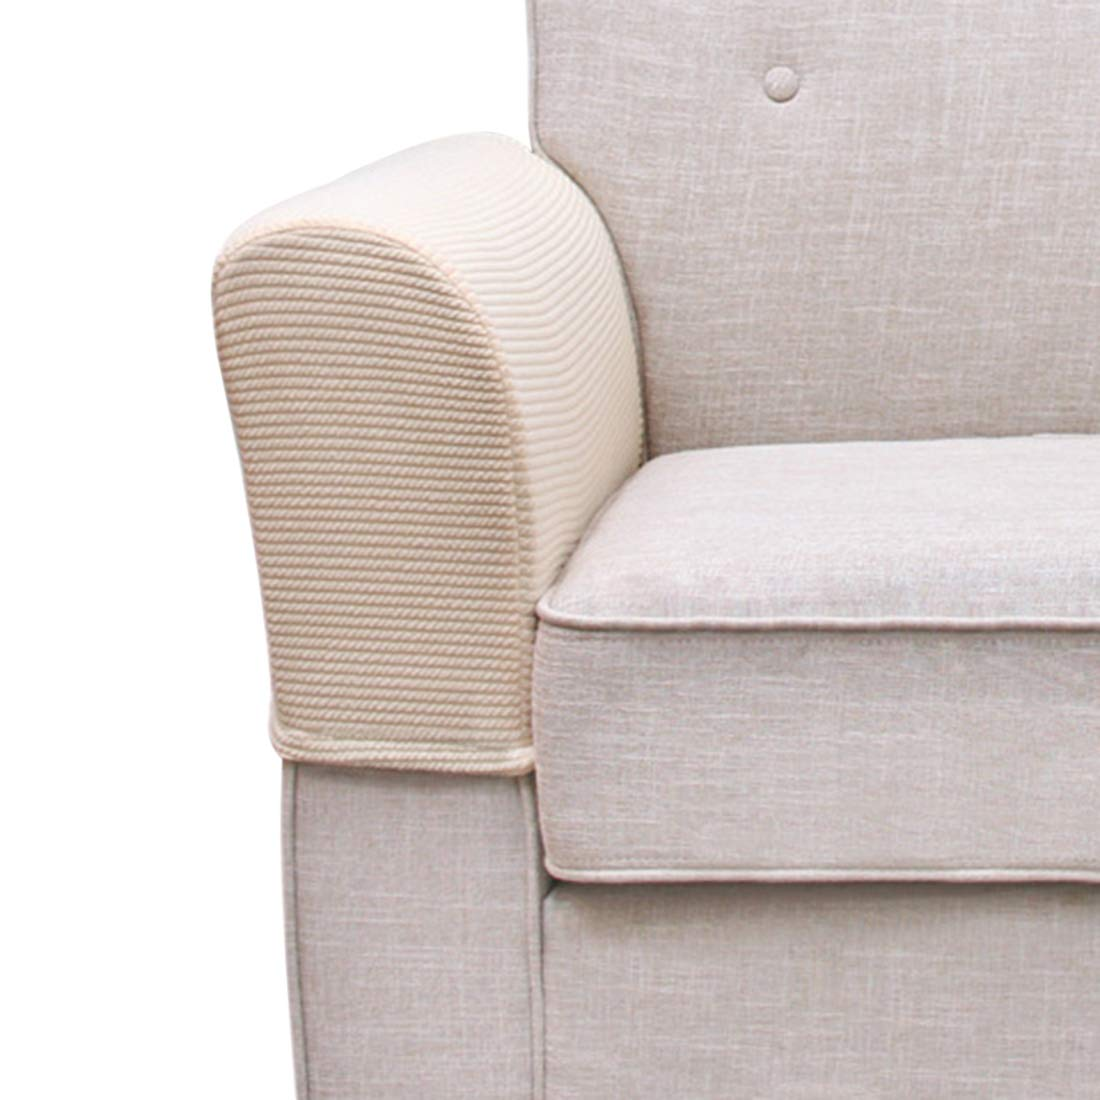 FREAHAP R Armrest Covers Anti-Slip Armchair Slipcovers Stain-proof Furniture Protector 2pcs